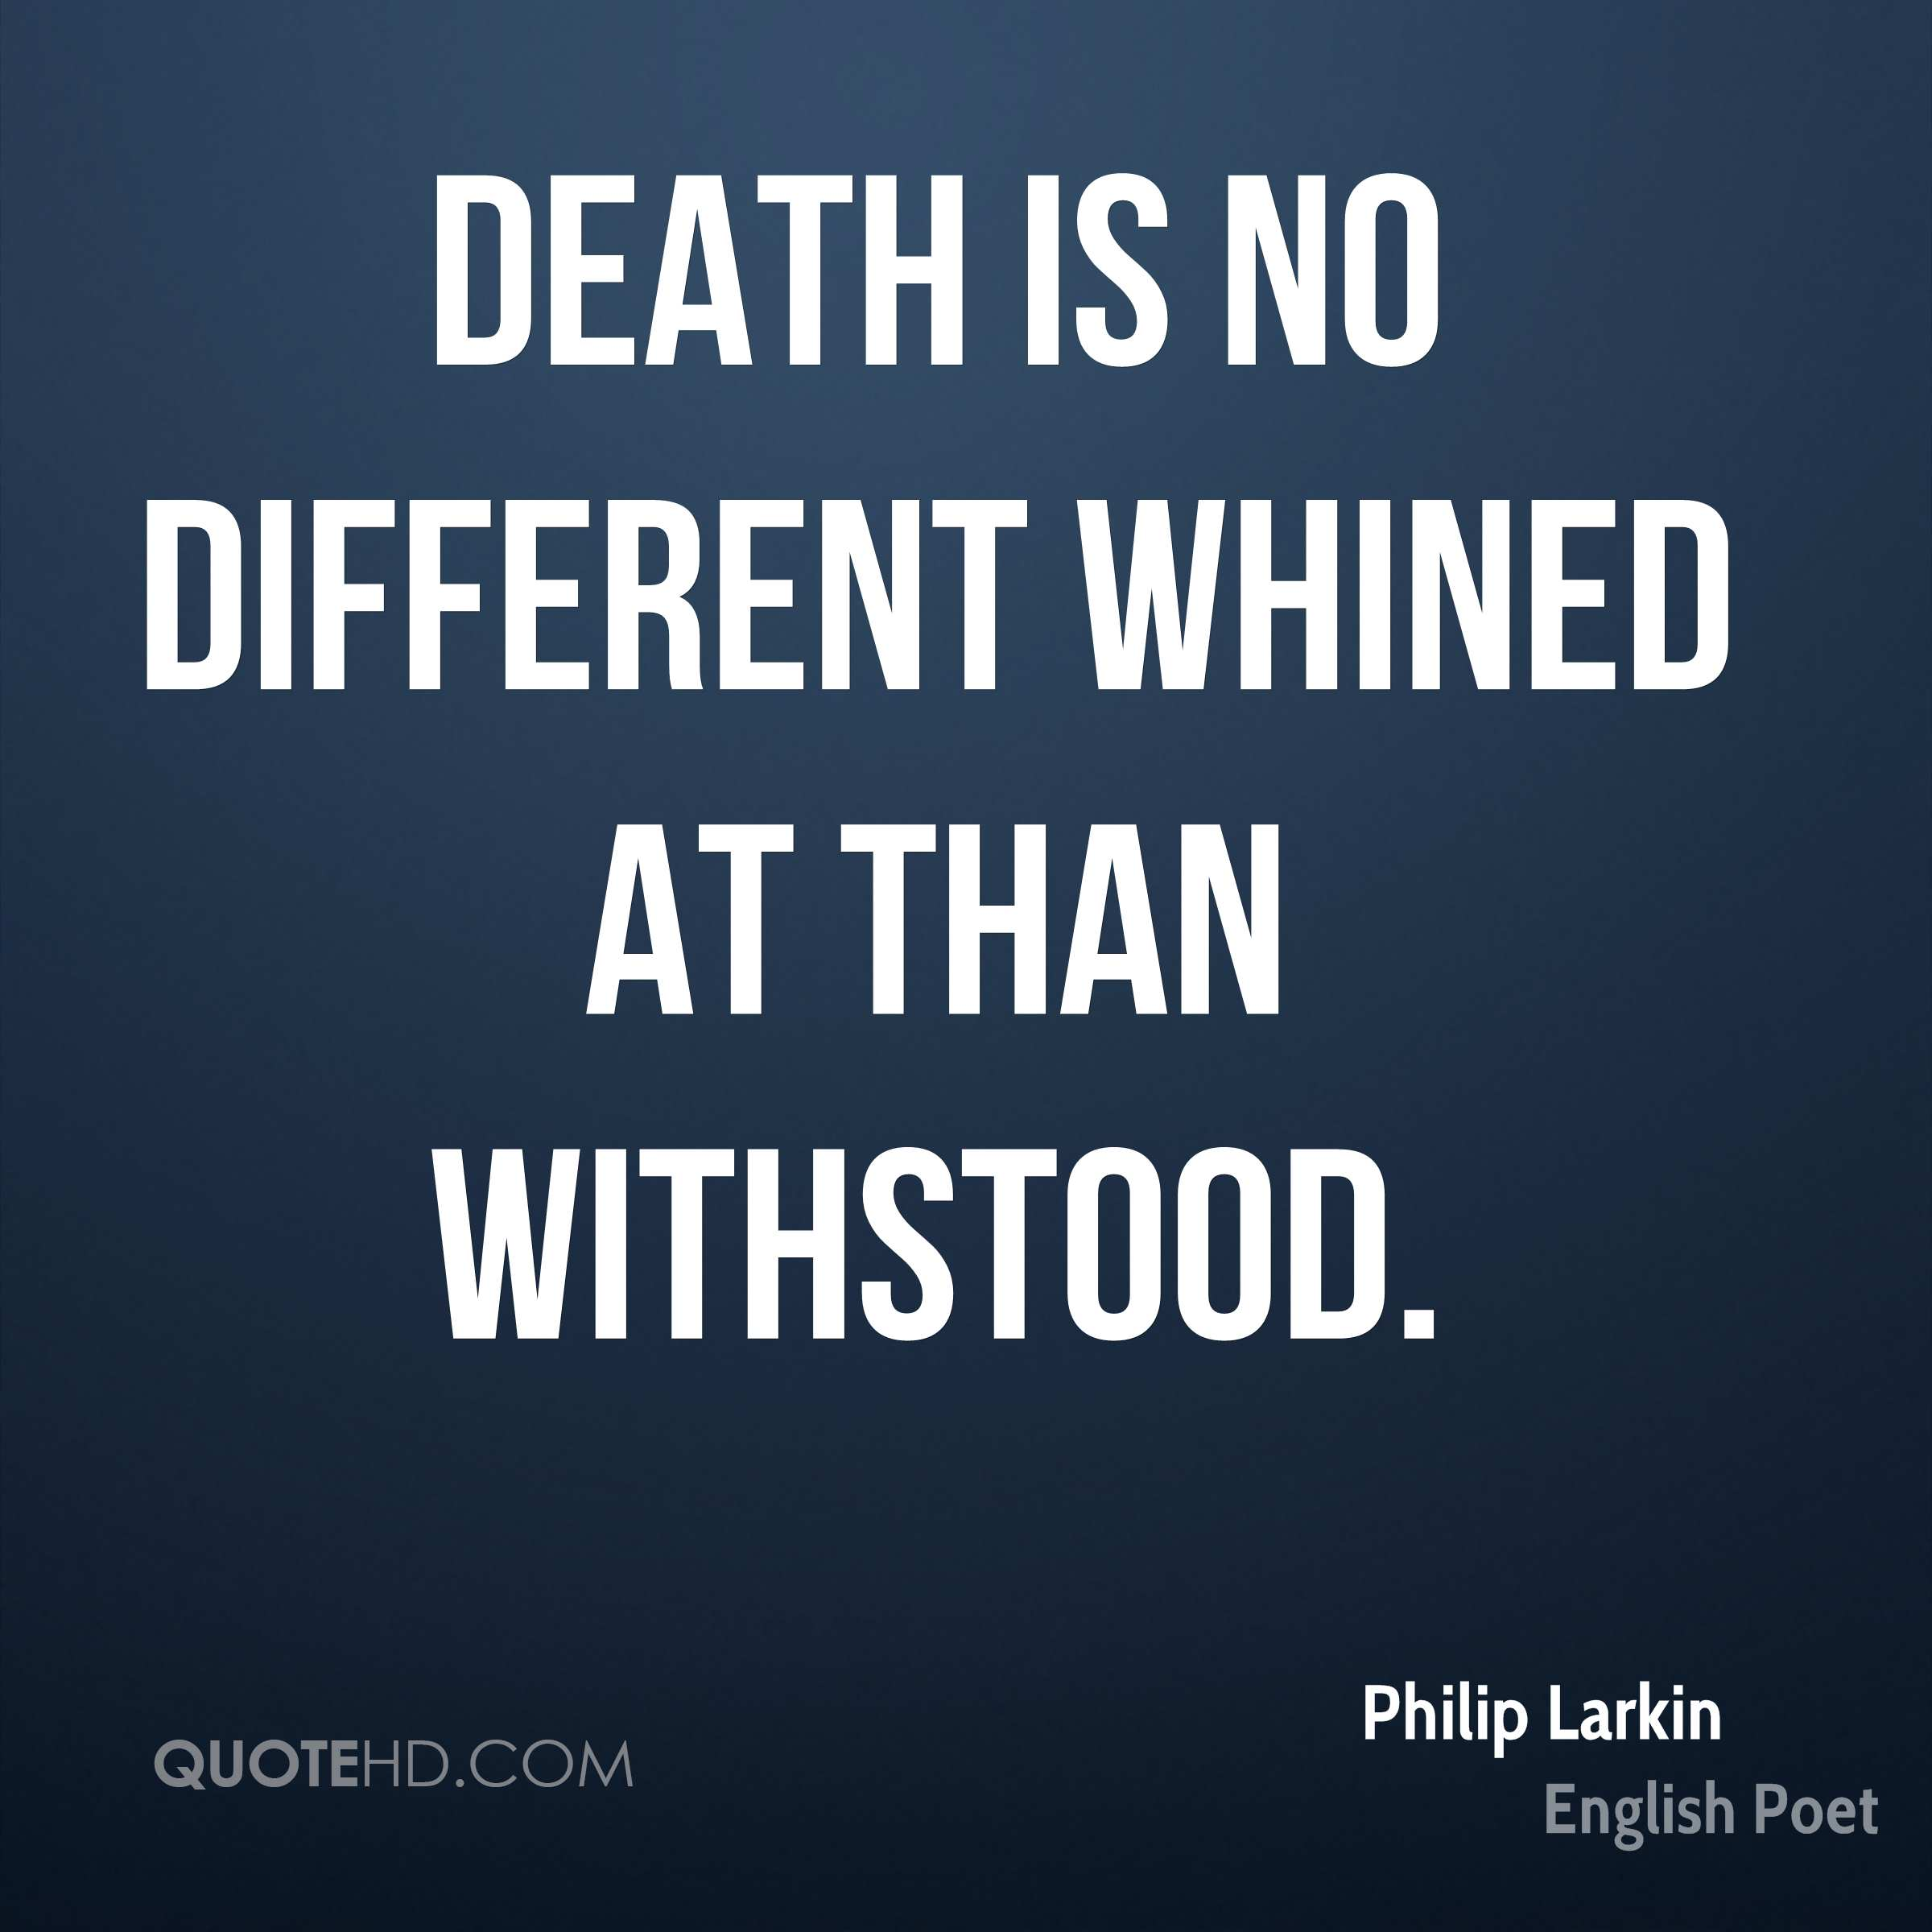 Quotes On Death Philip Larkin Quotes  Quotehd